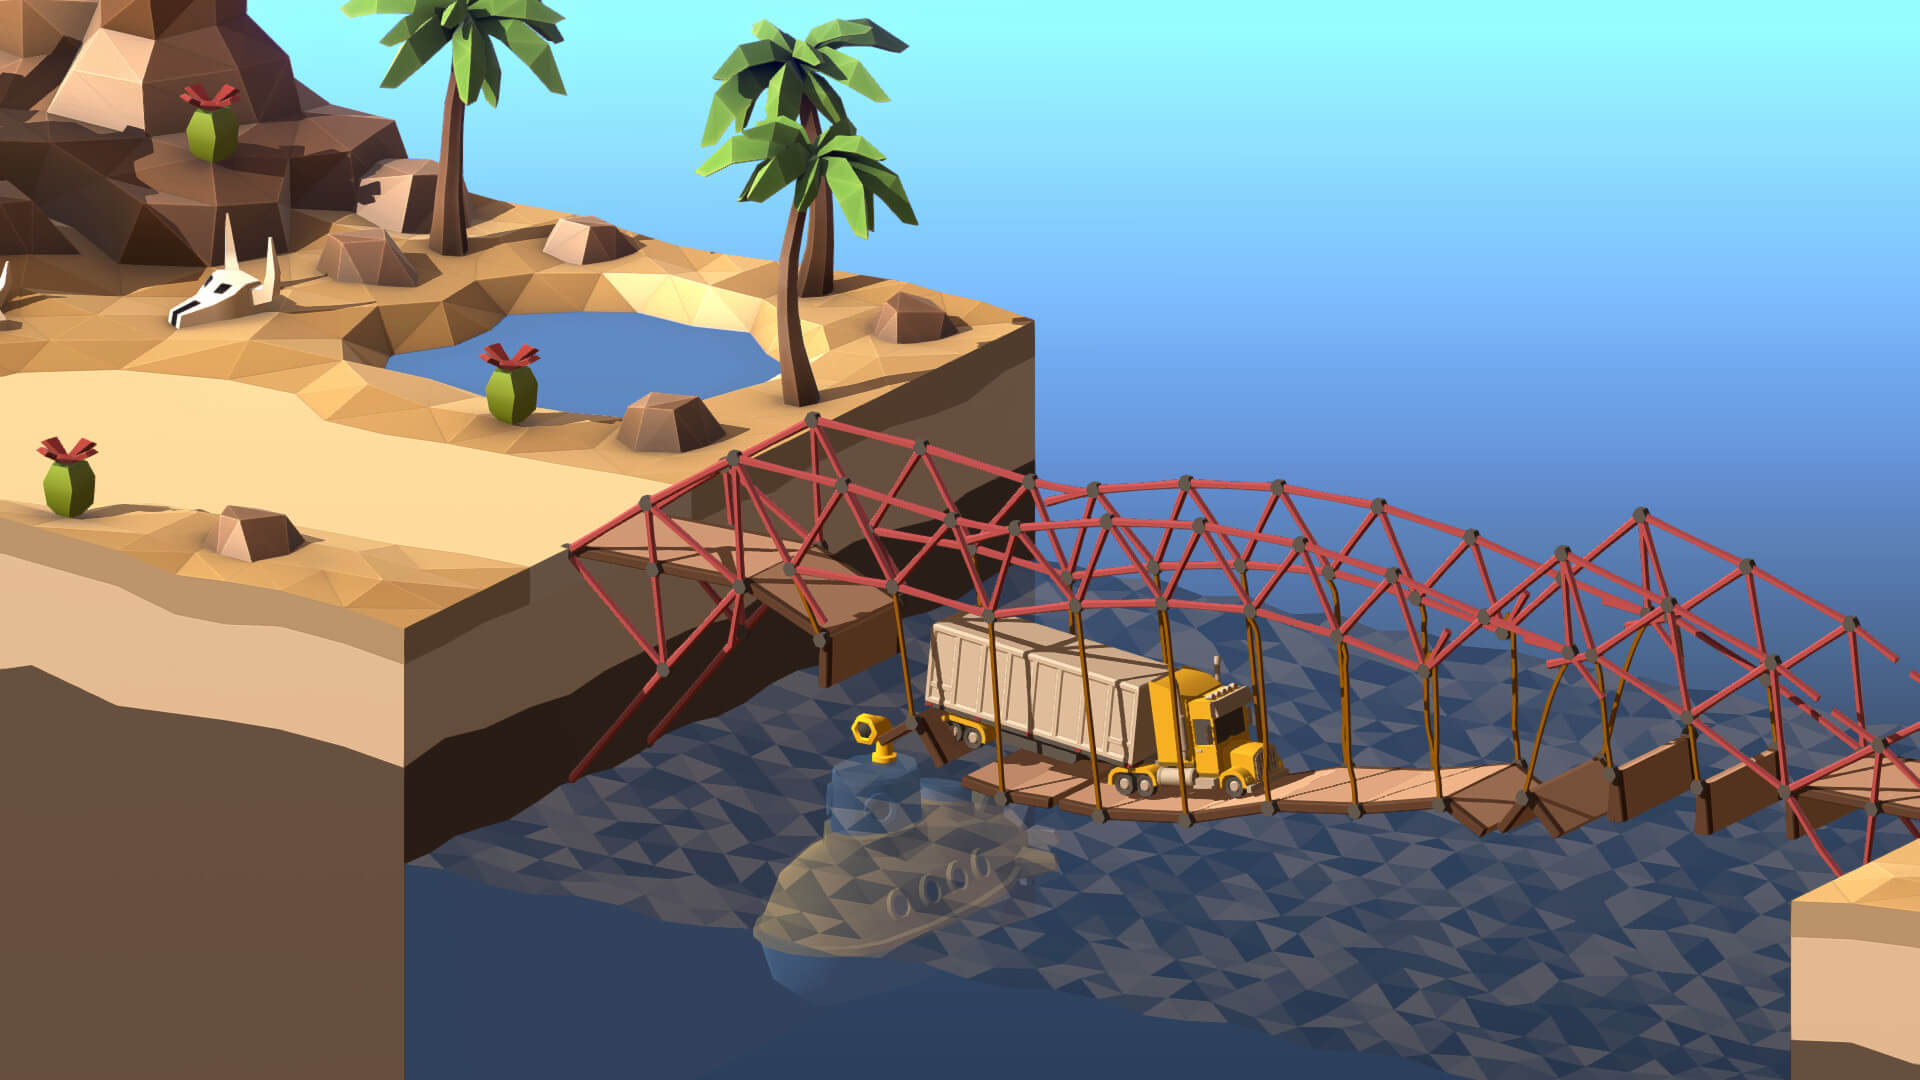 Poly Bridge 2 Releases May 28th For PC